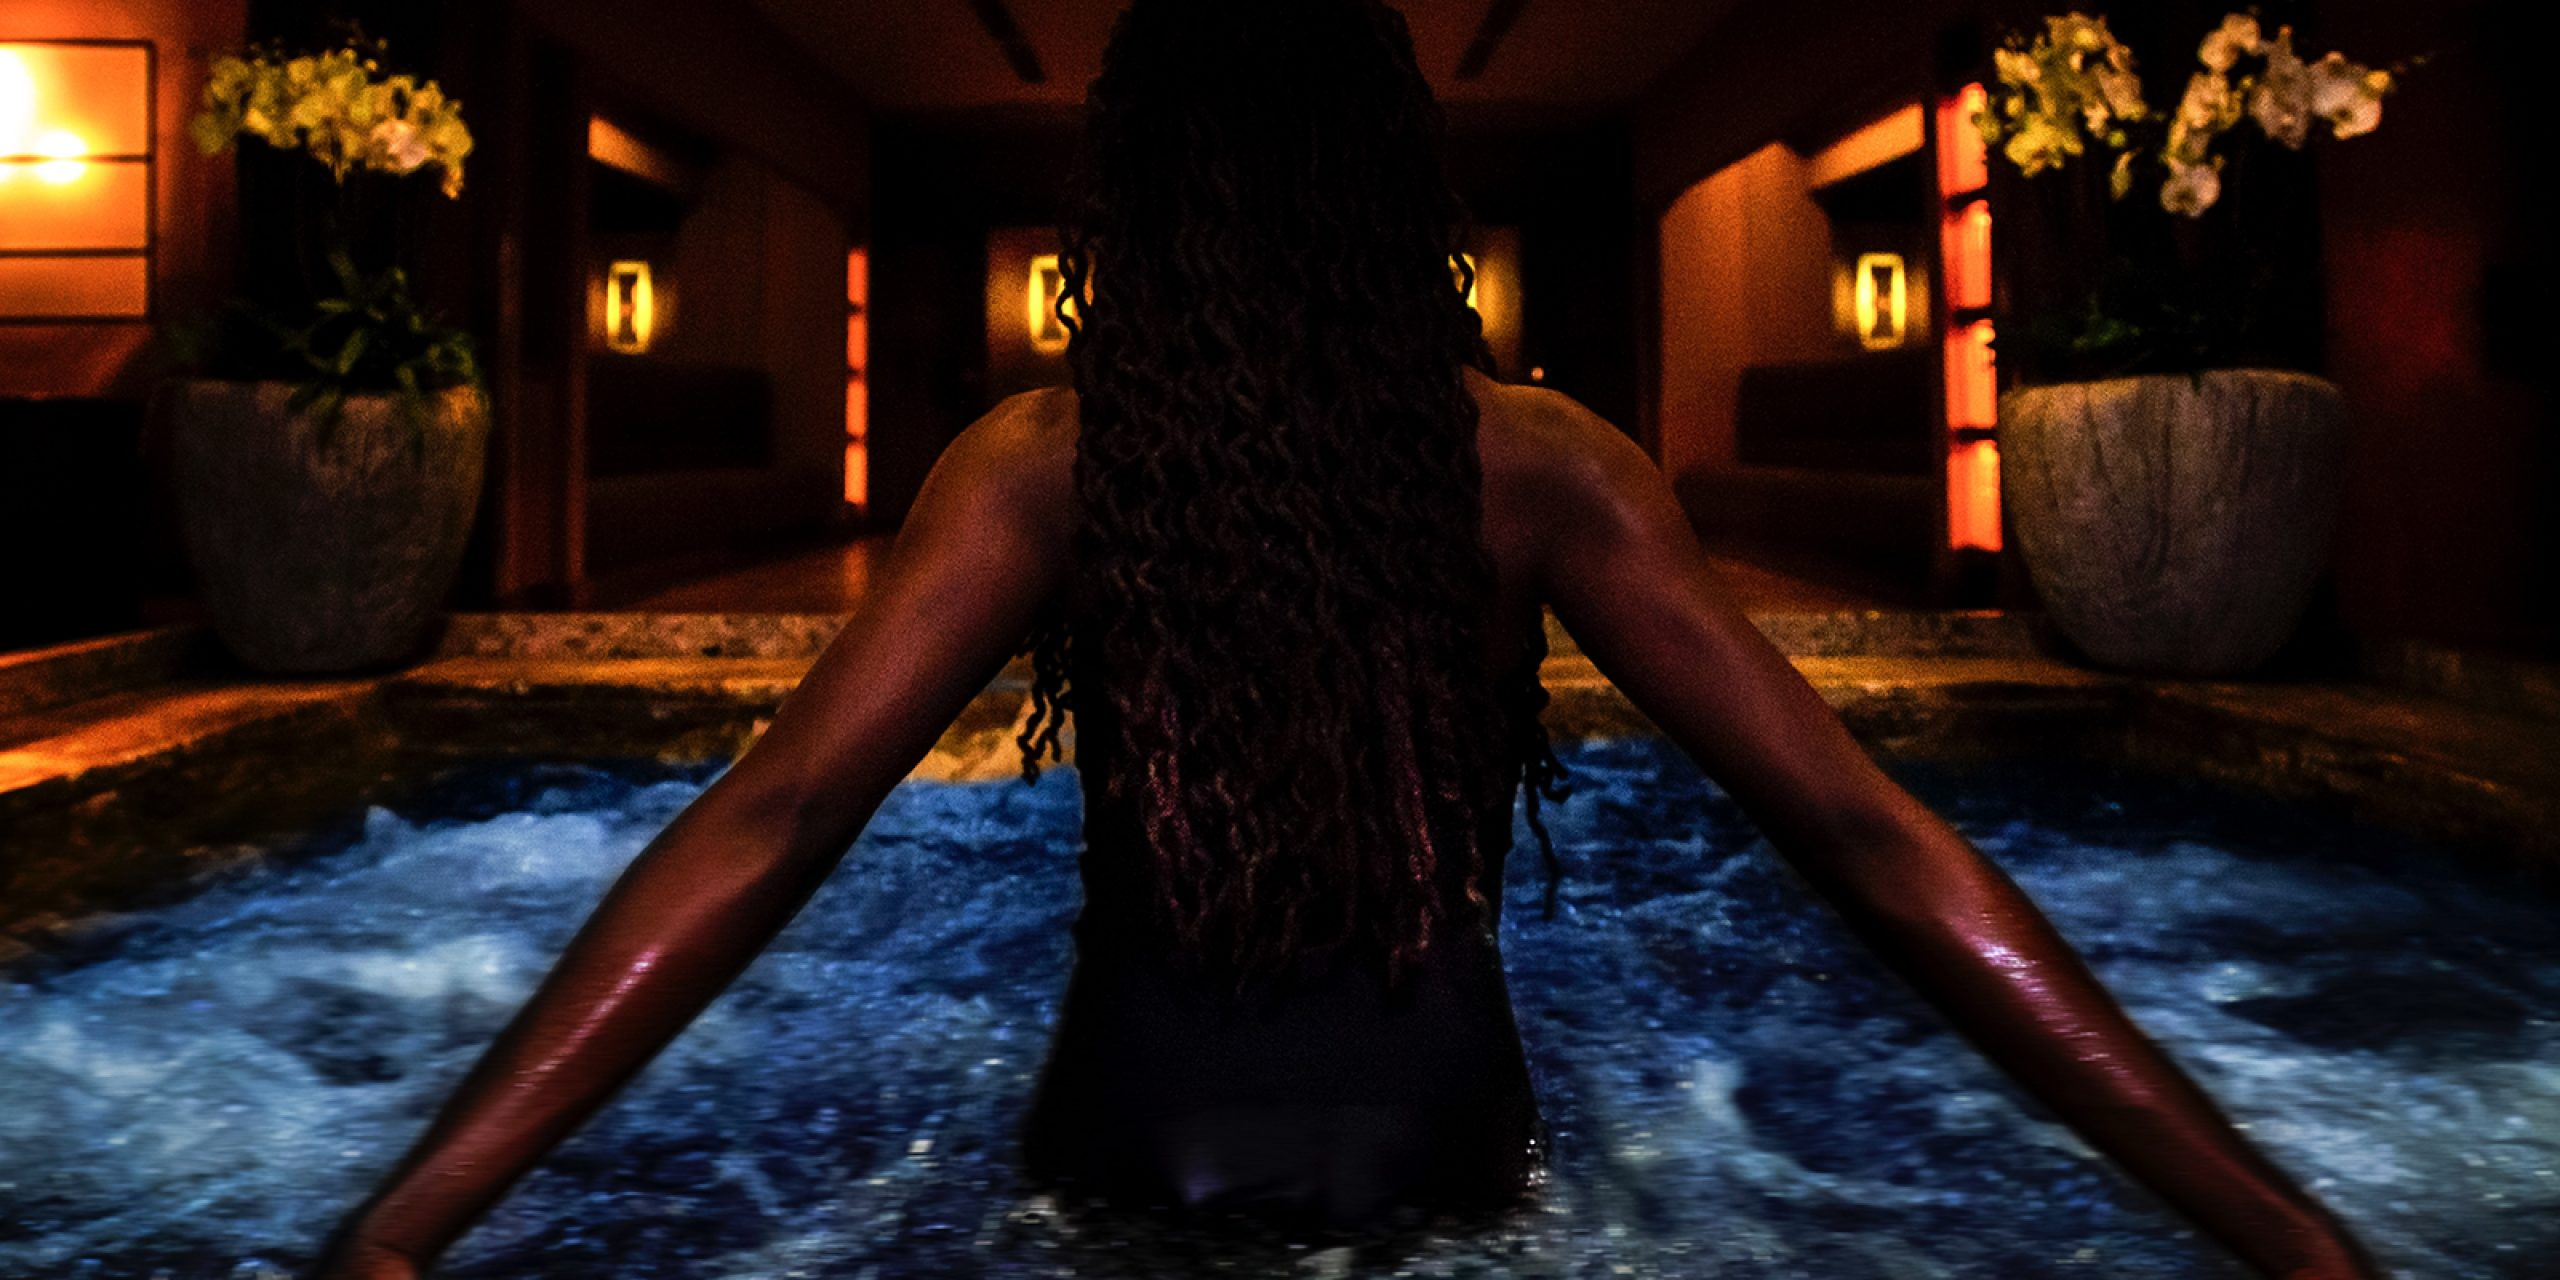 Woman's back emerging from a pool of water